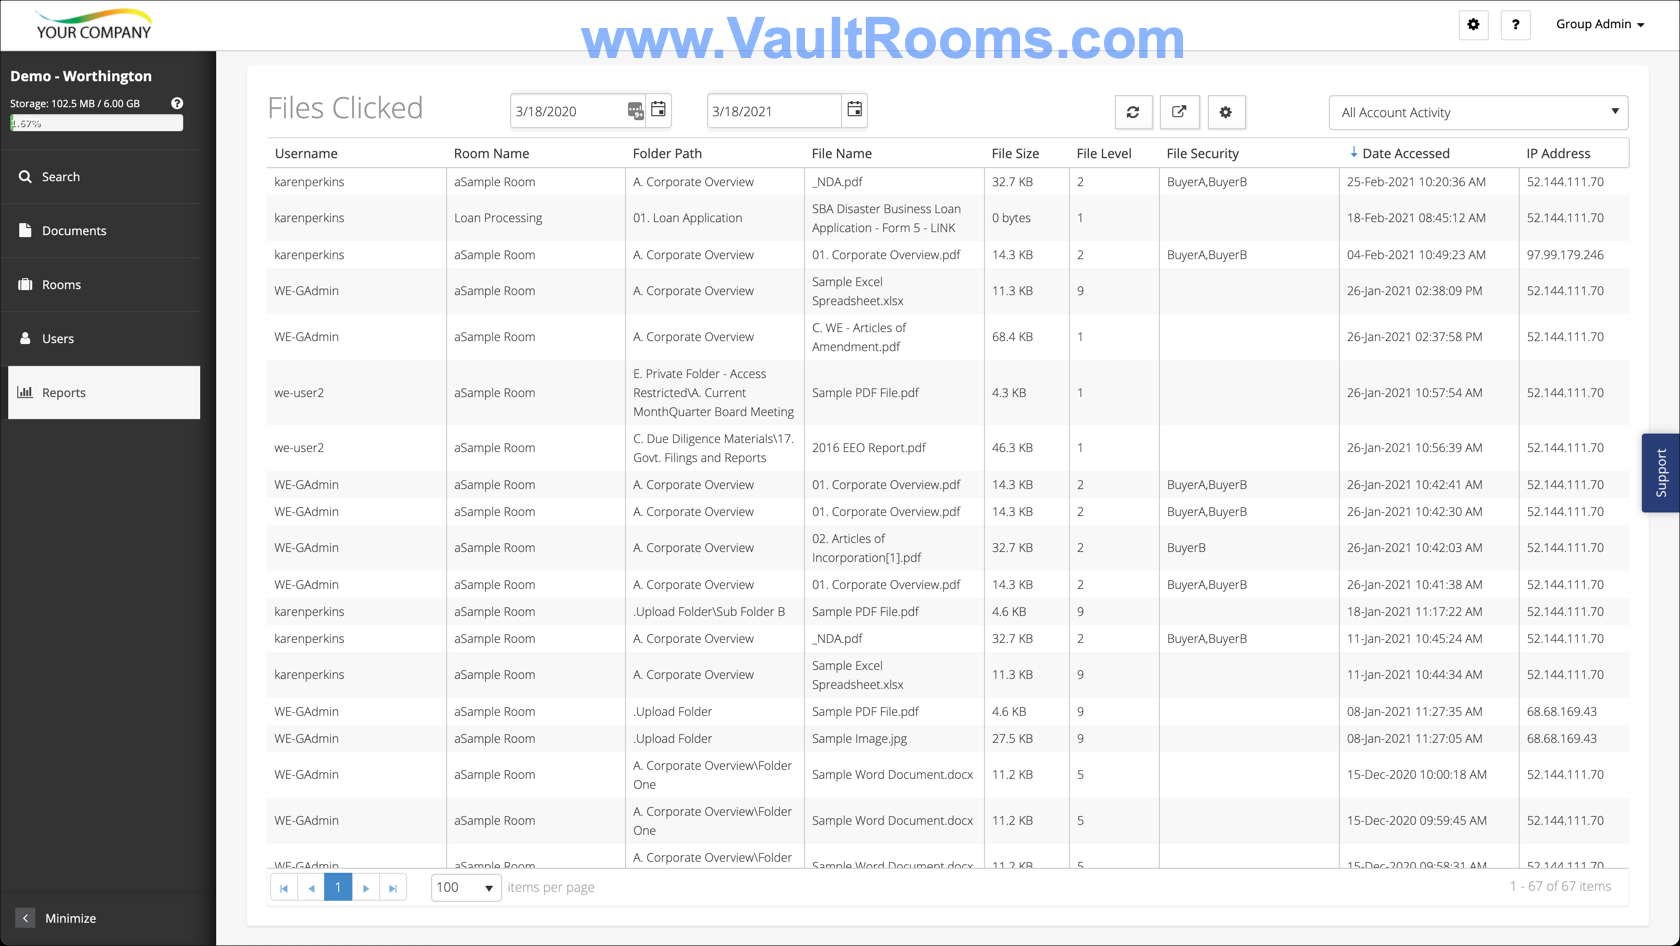 Vault Rooms Reports Screen